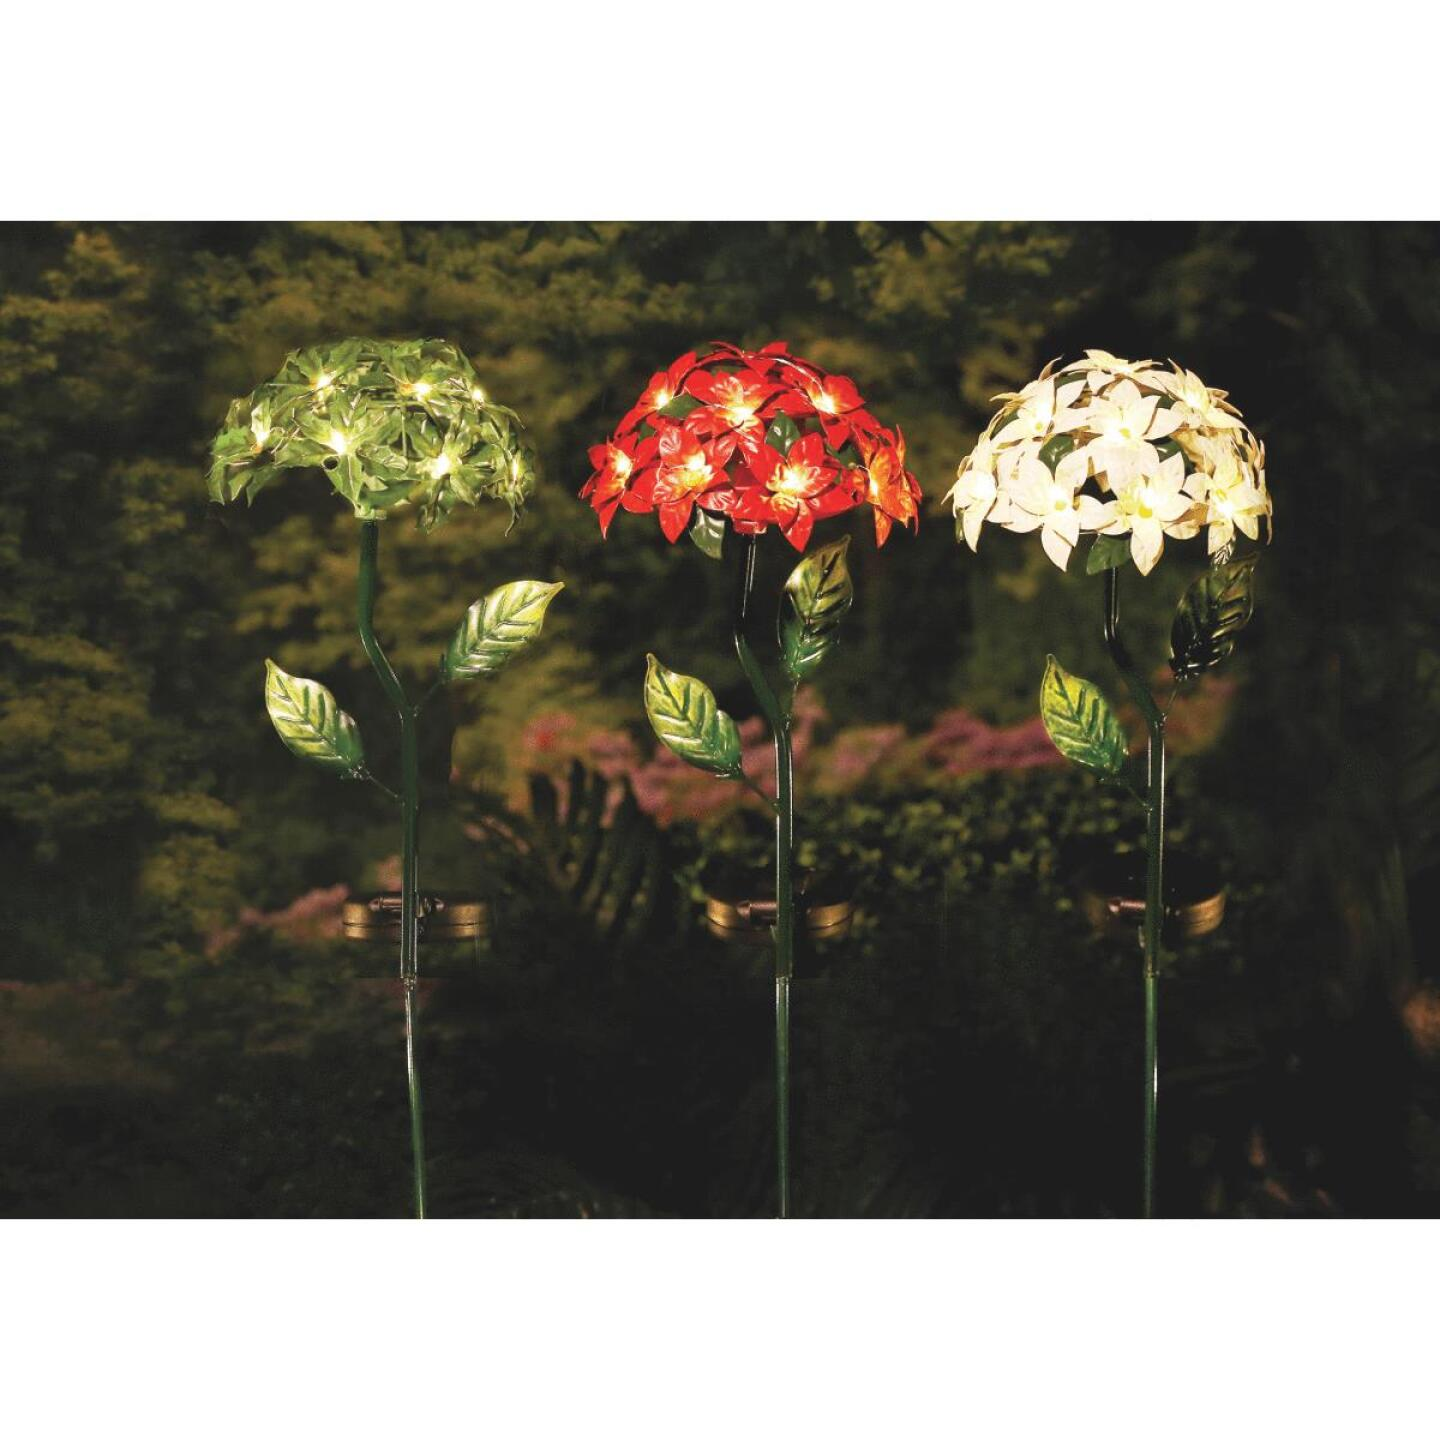 Alpine 20 In. LED Poinsettia Solar Stake Light Image 2